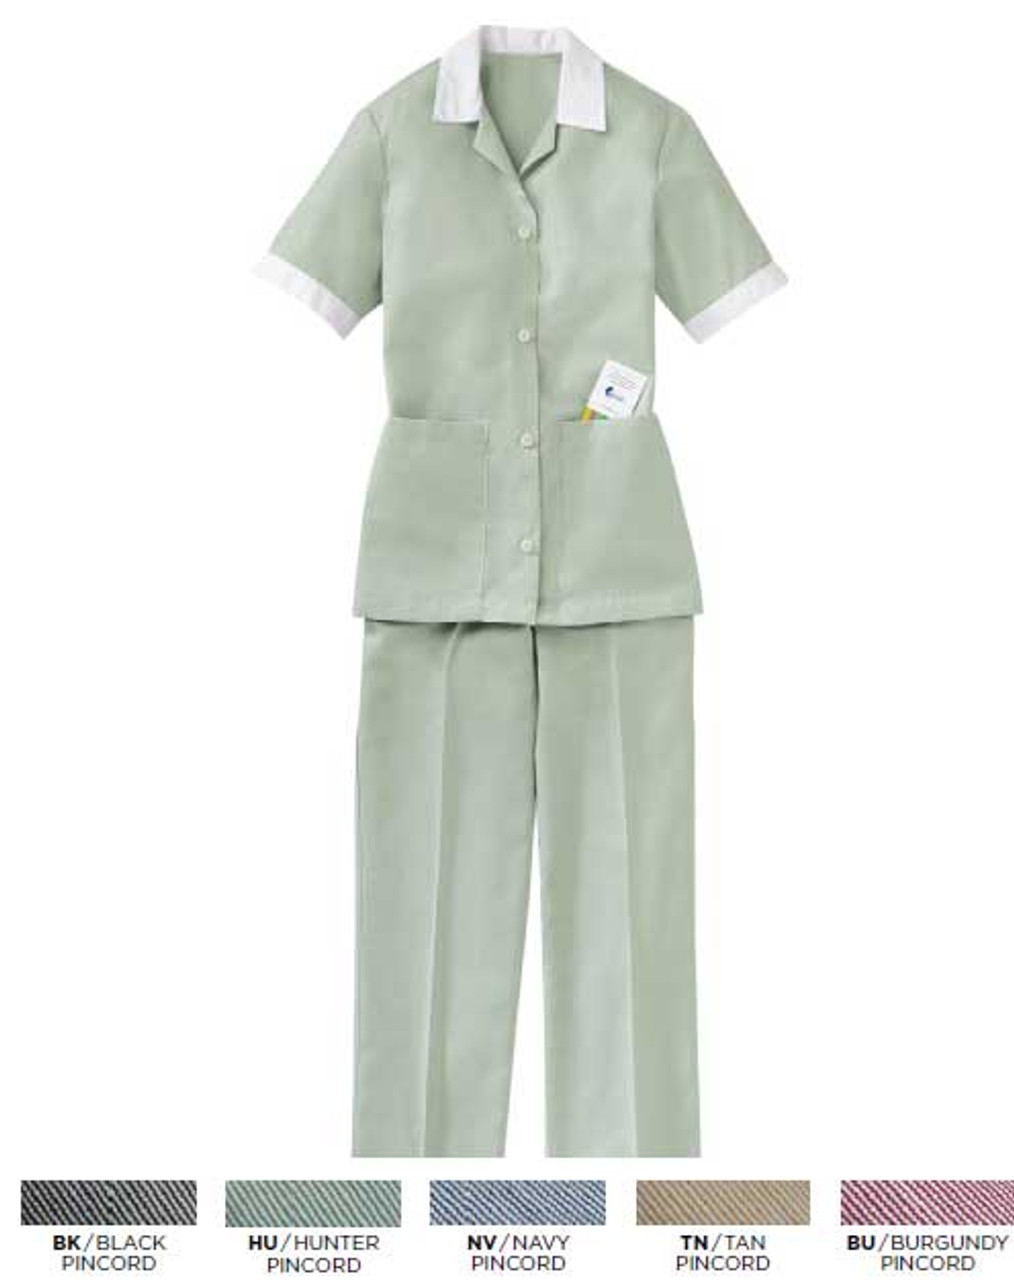 Pincord housekeeping pants to accompany out pincord housekeeping shirt.